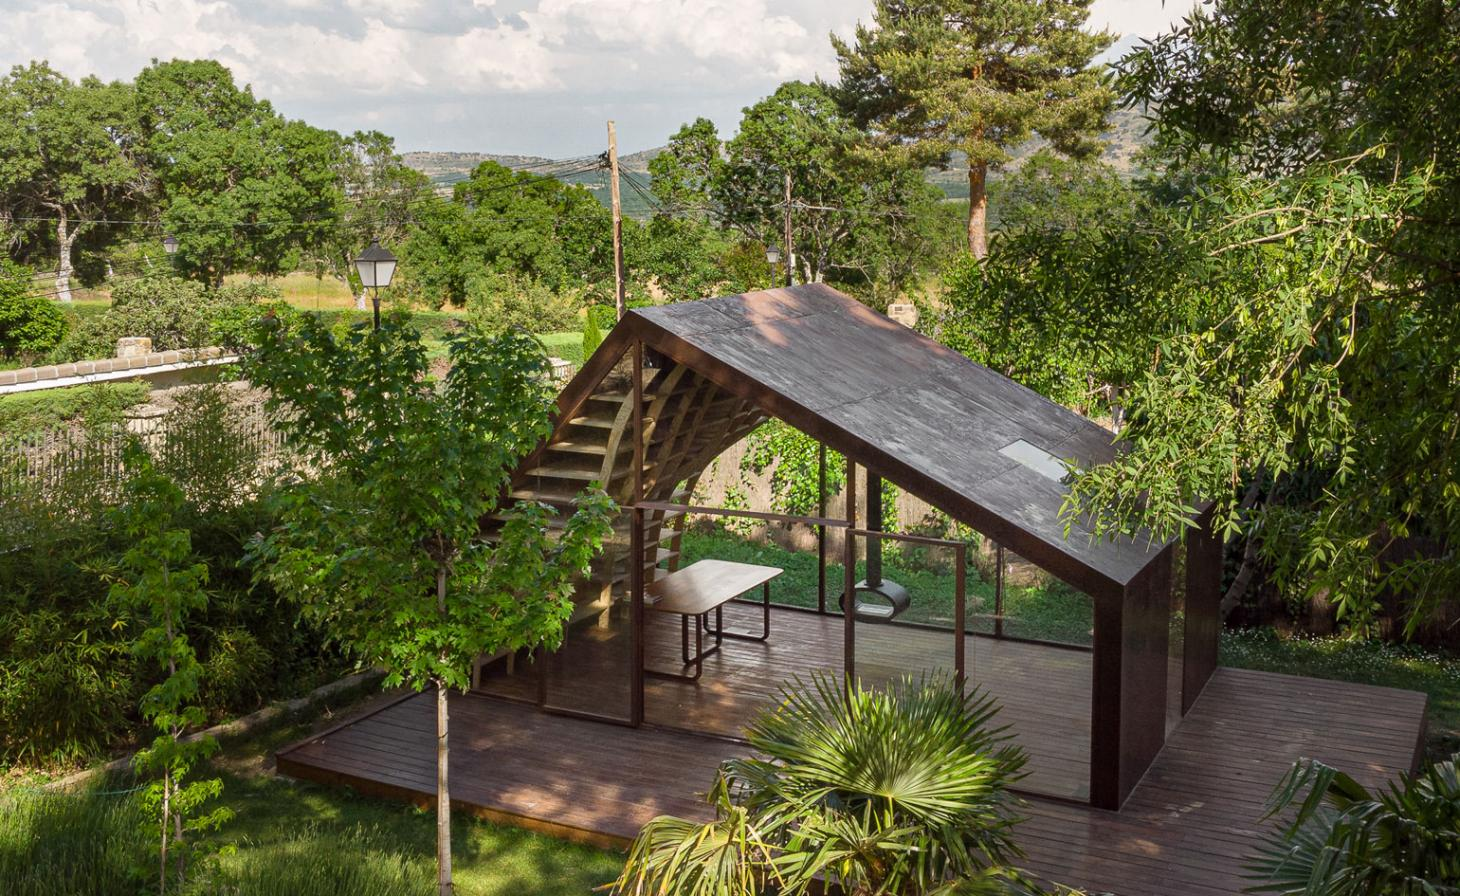 Cabin with wood roof and glass wall in a garden